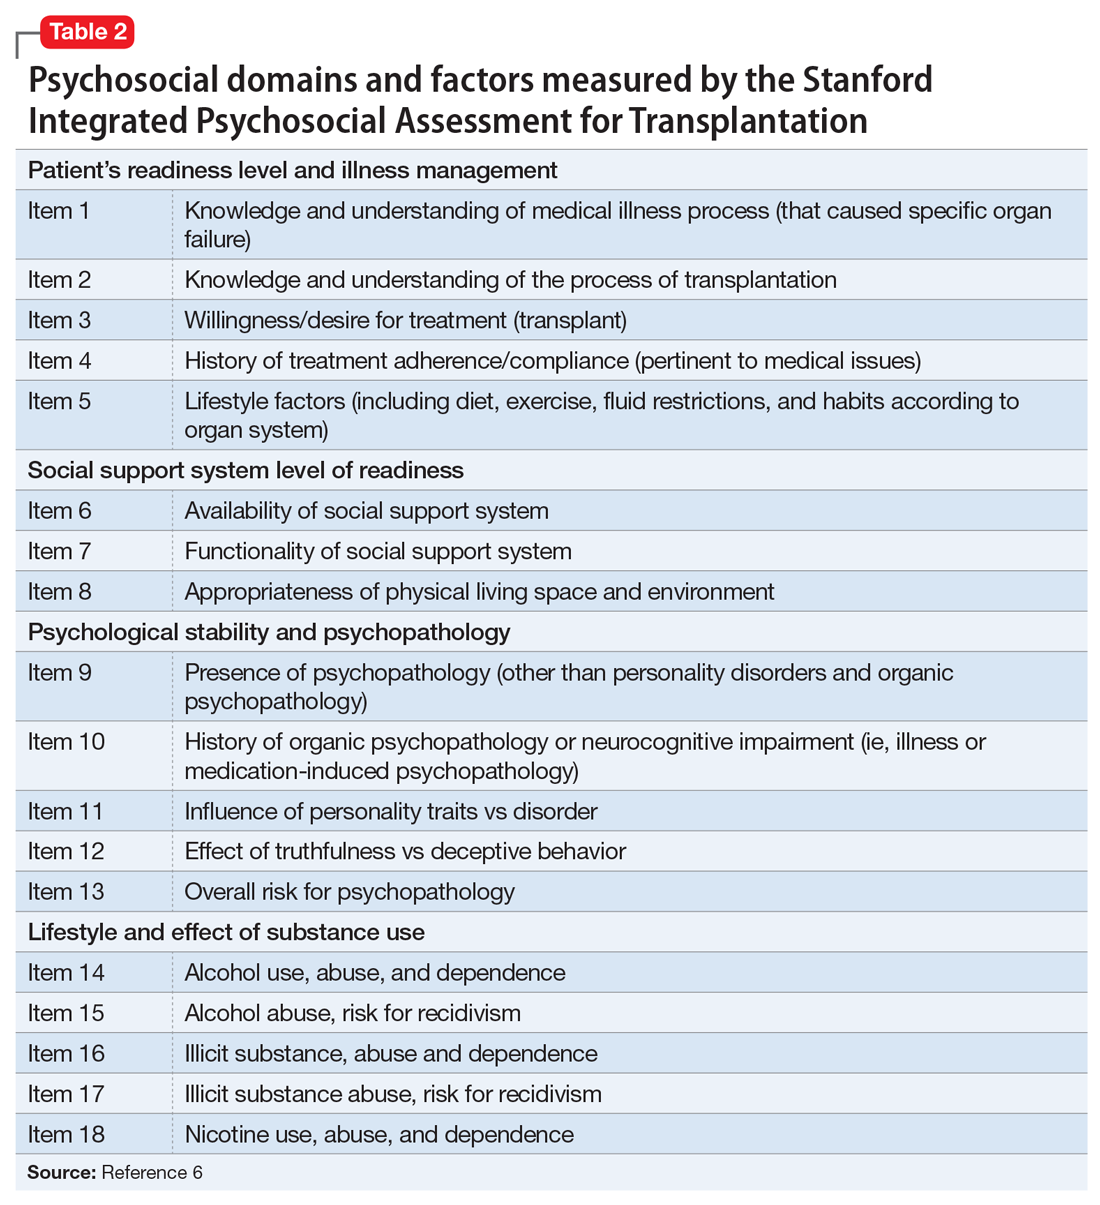 Psychosocial domains and factors measured by the Stanford Integrated Psychosocial Assessment for Transplantation